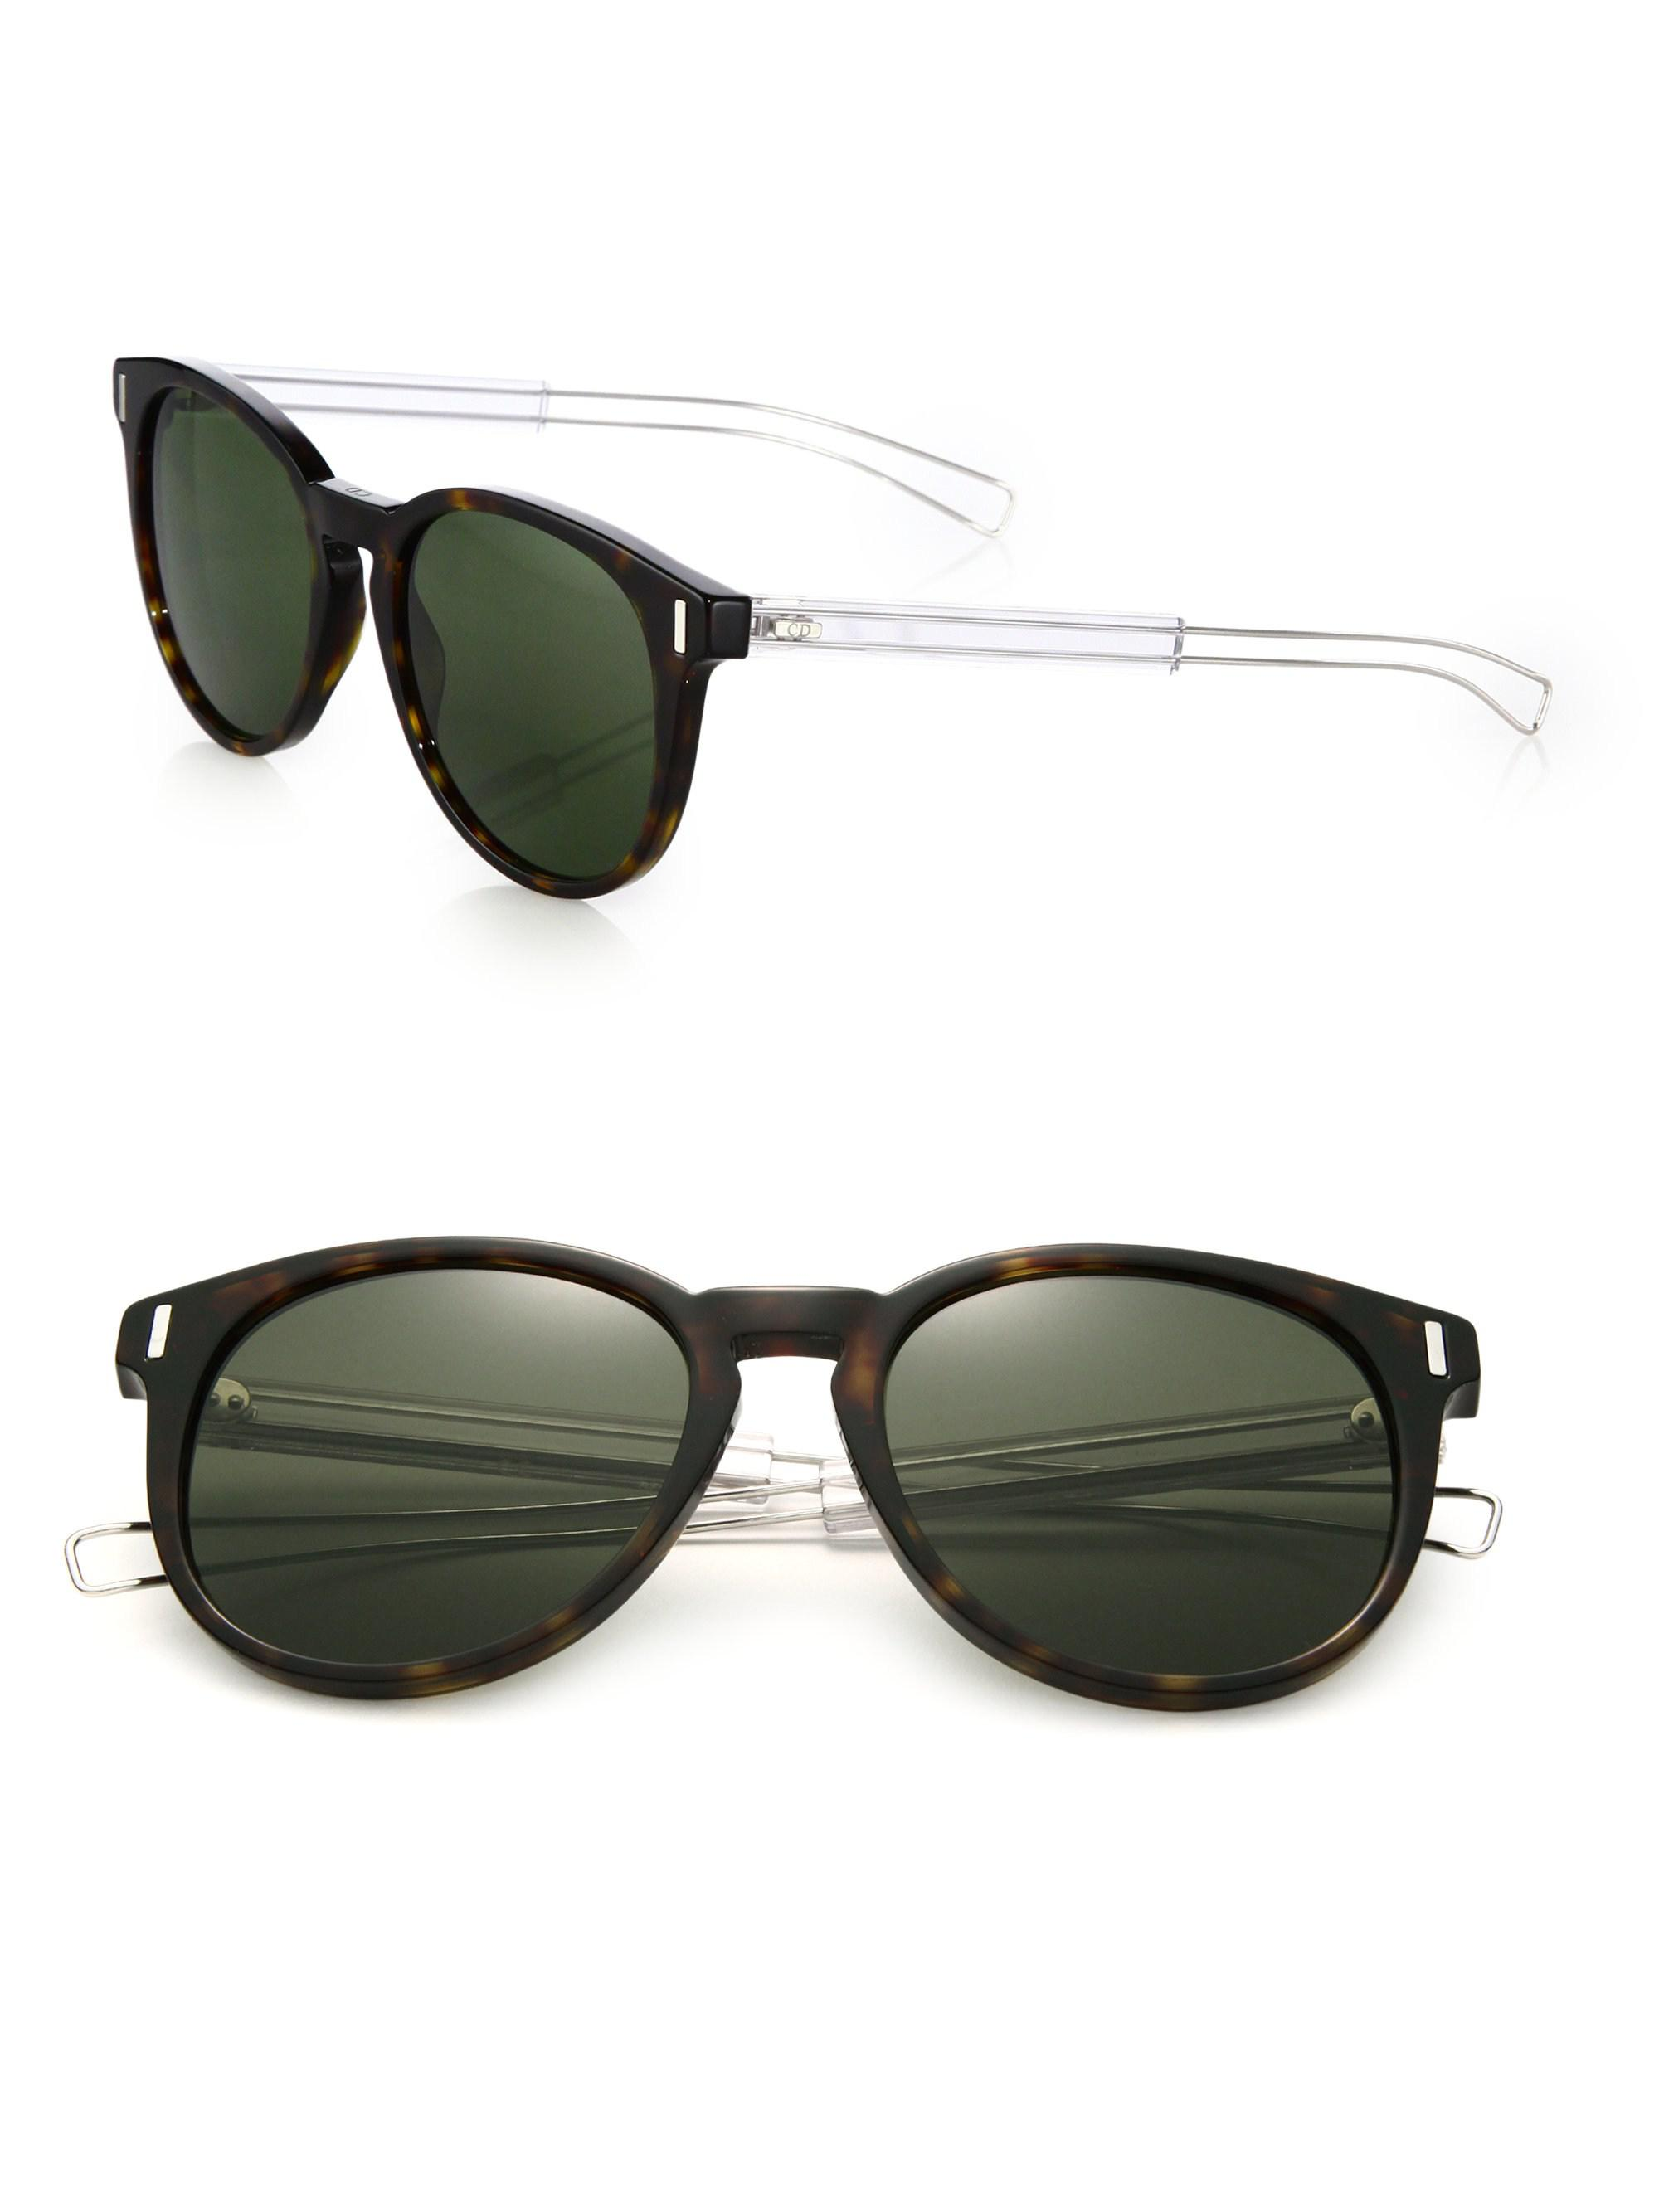 0a3539368 Lyst - Dior Homme 54mm Black Tie Round Sunglasses in Black for Men